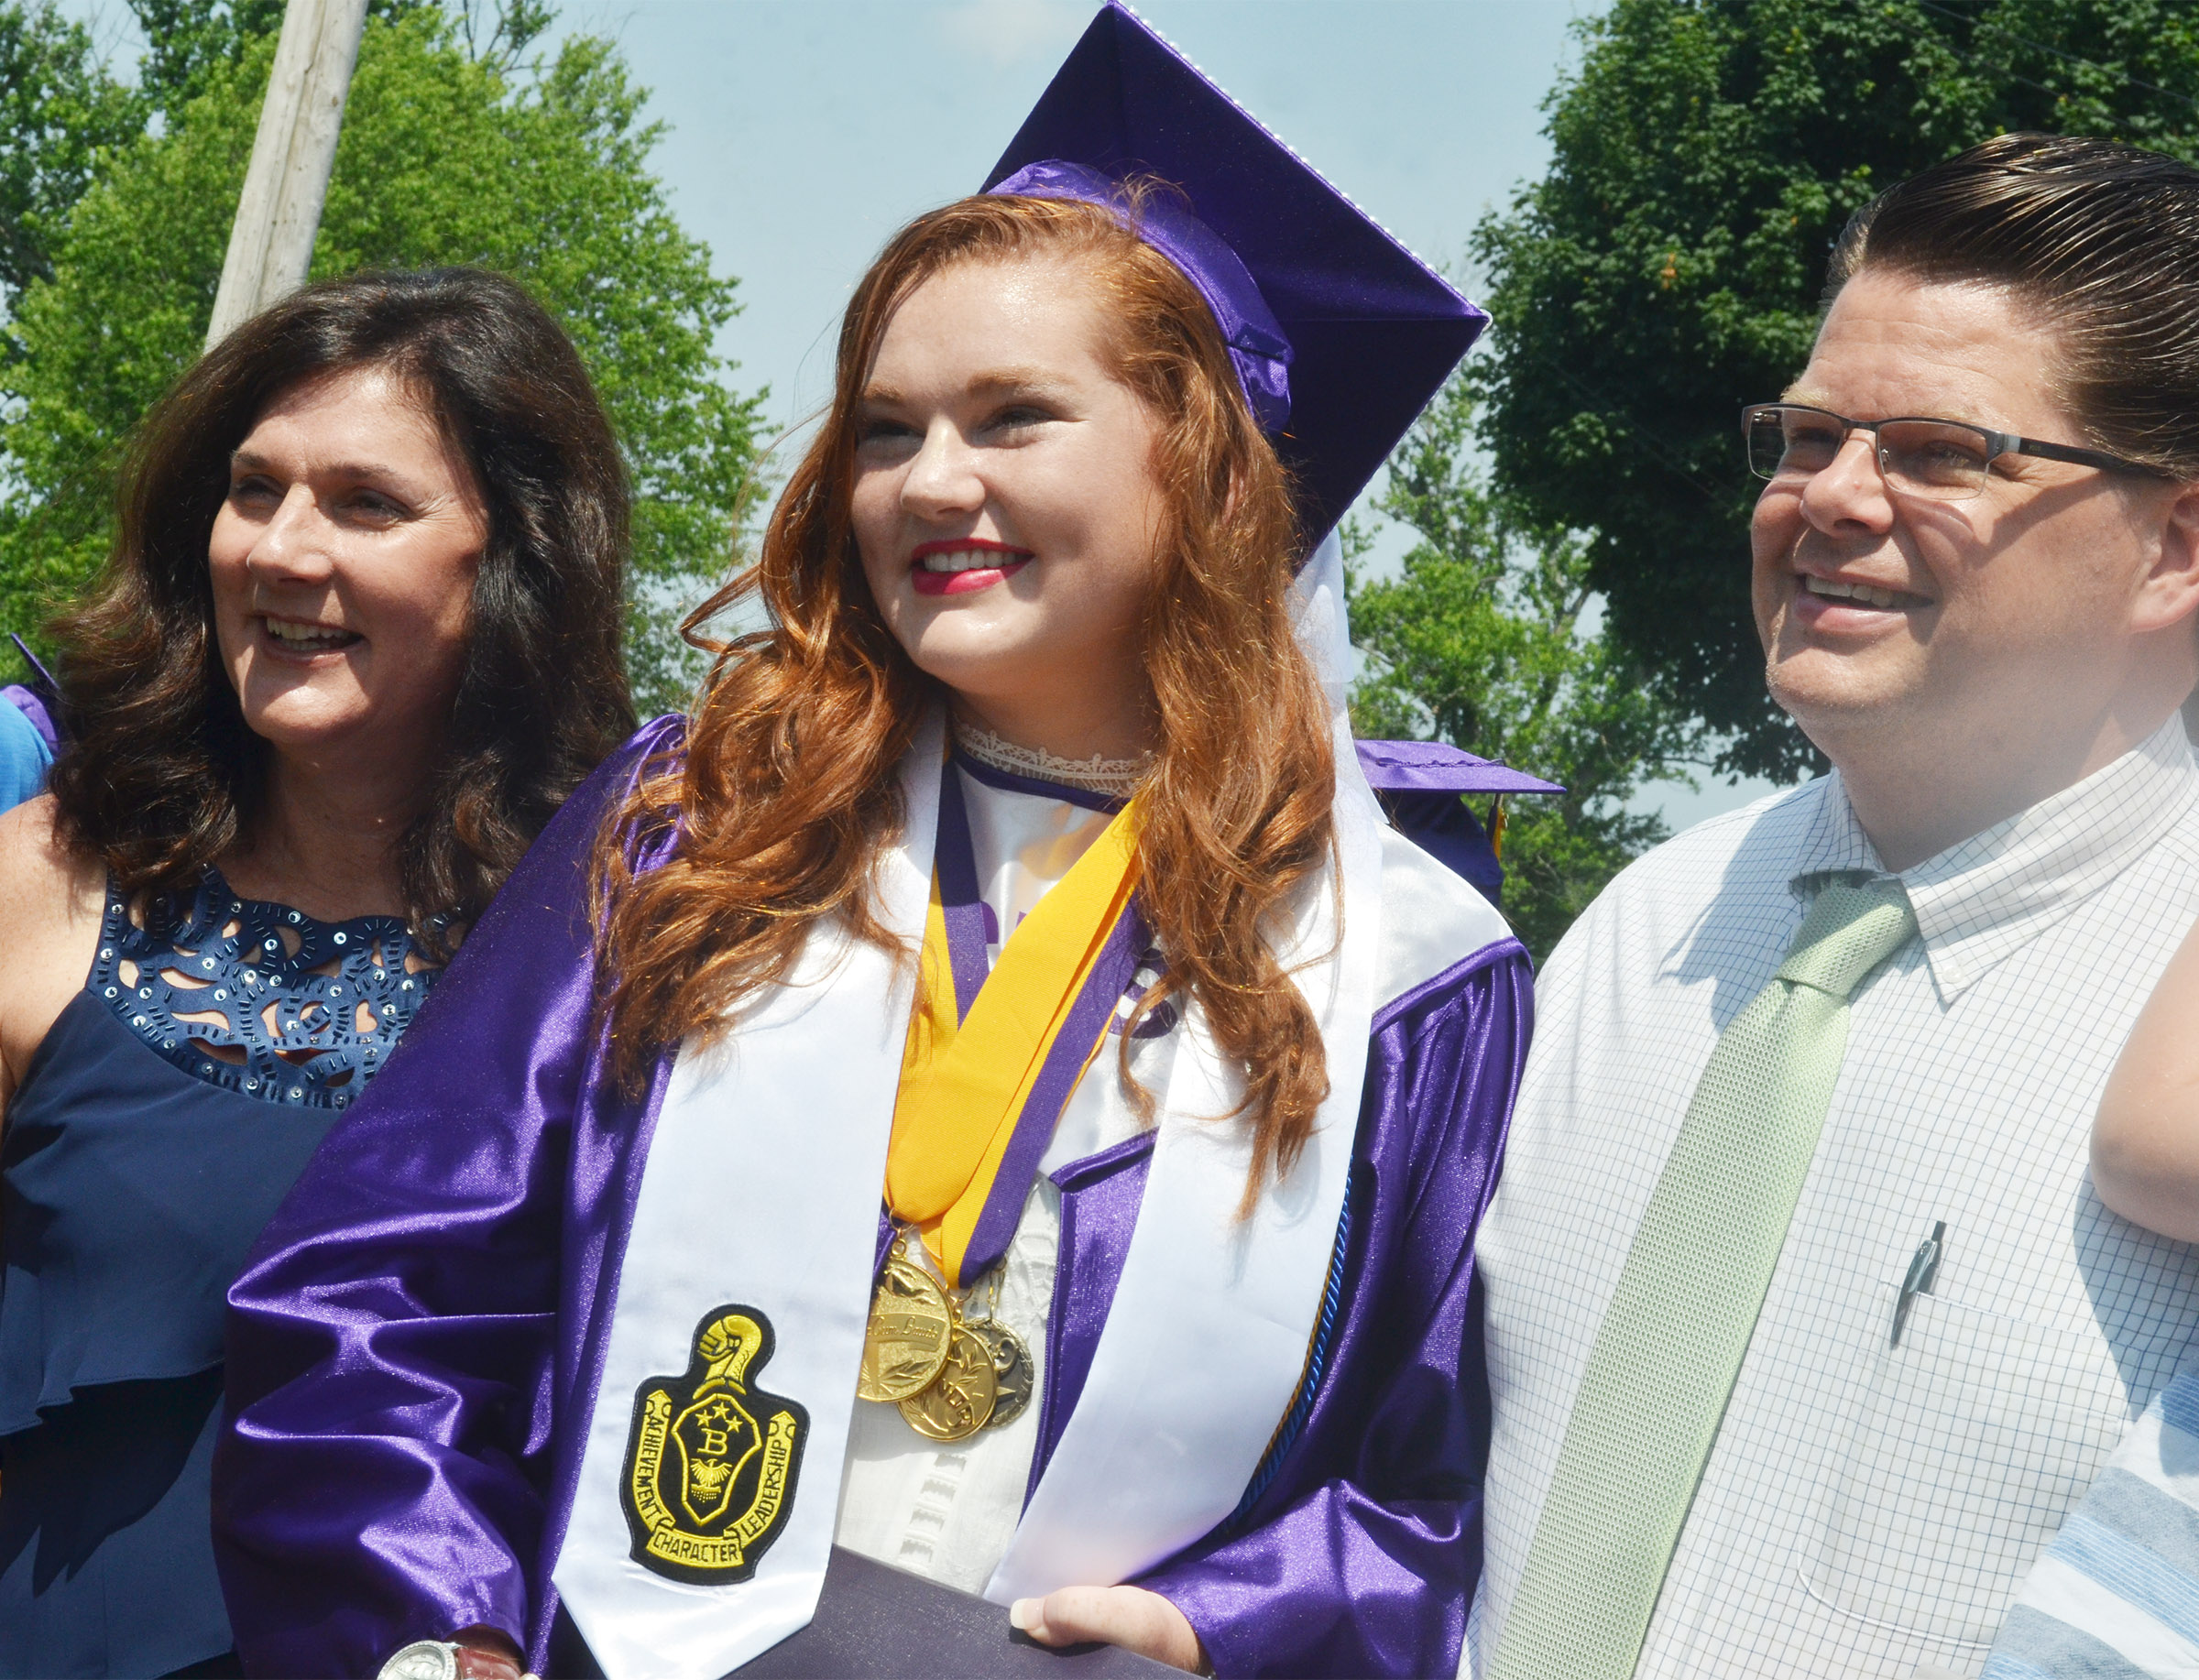 CHS graduate Mallory Haley poses for a photo with her parents, Patty and Dr. Arthur Haley.